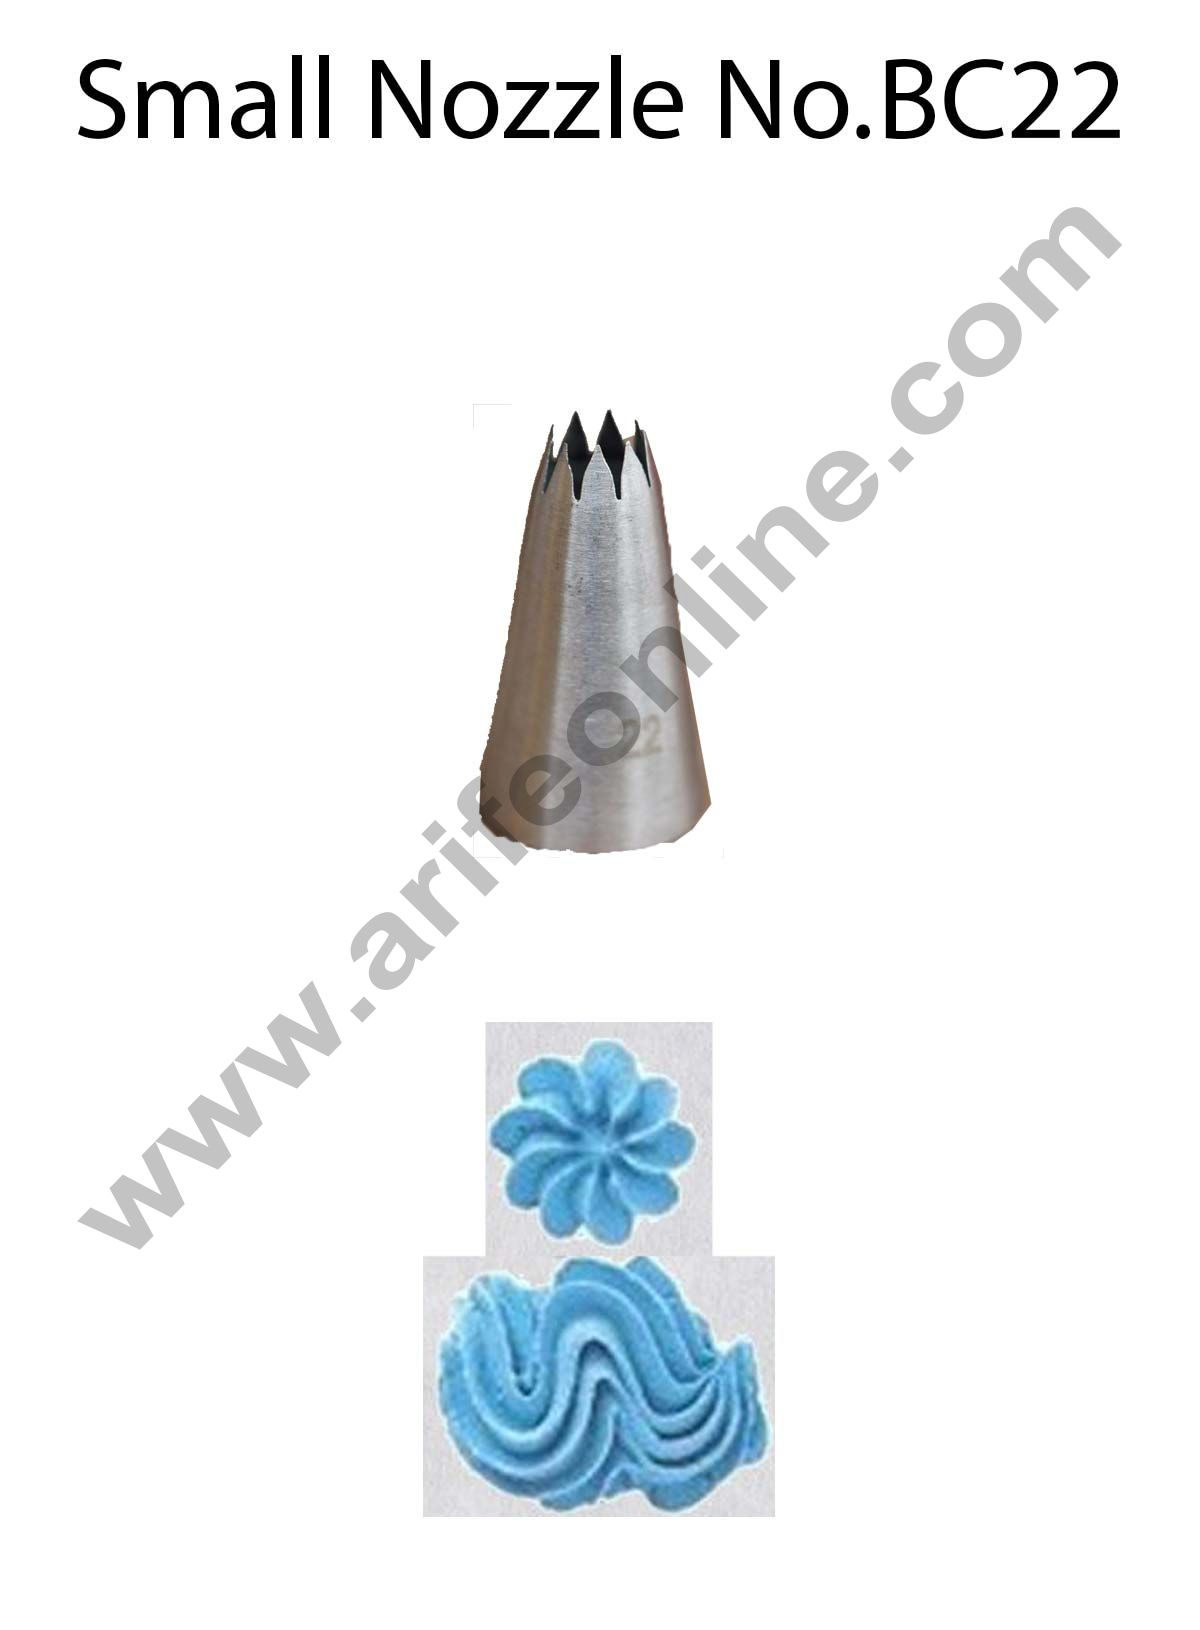 Cake Decor Small Nozzle - No. BC22 Open Star Piping Nozzle